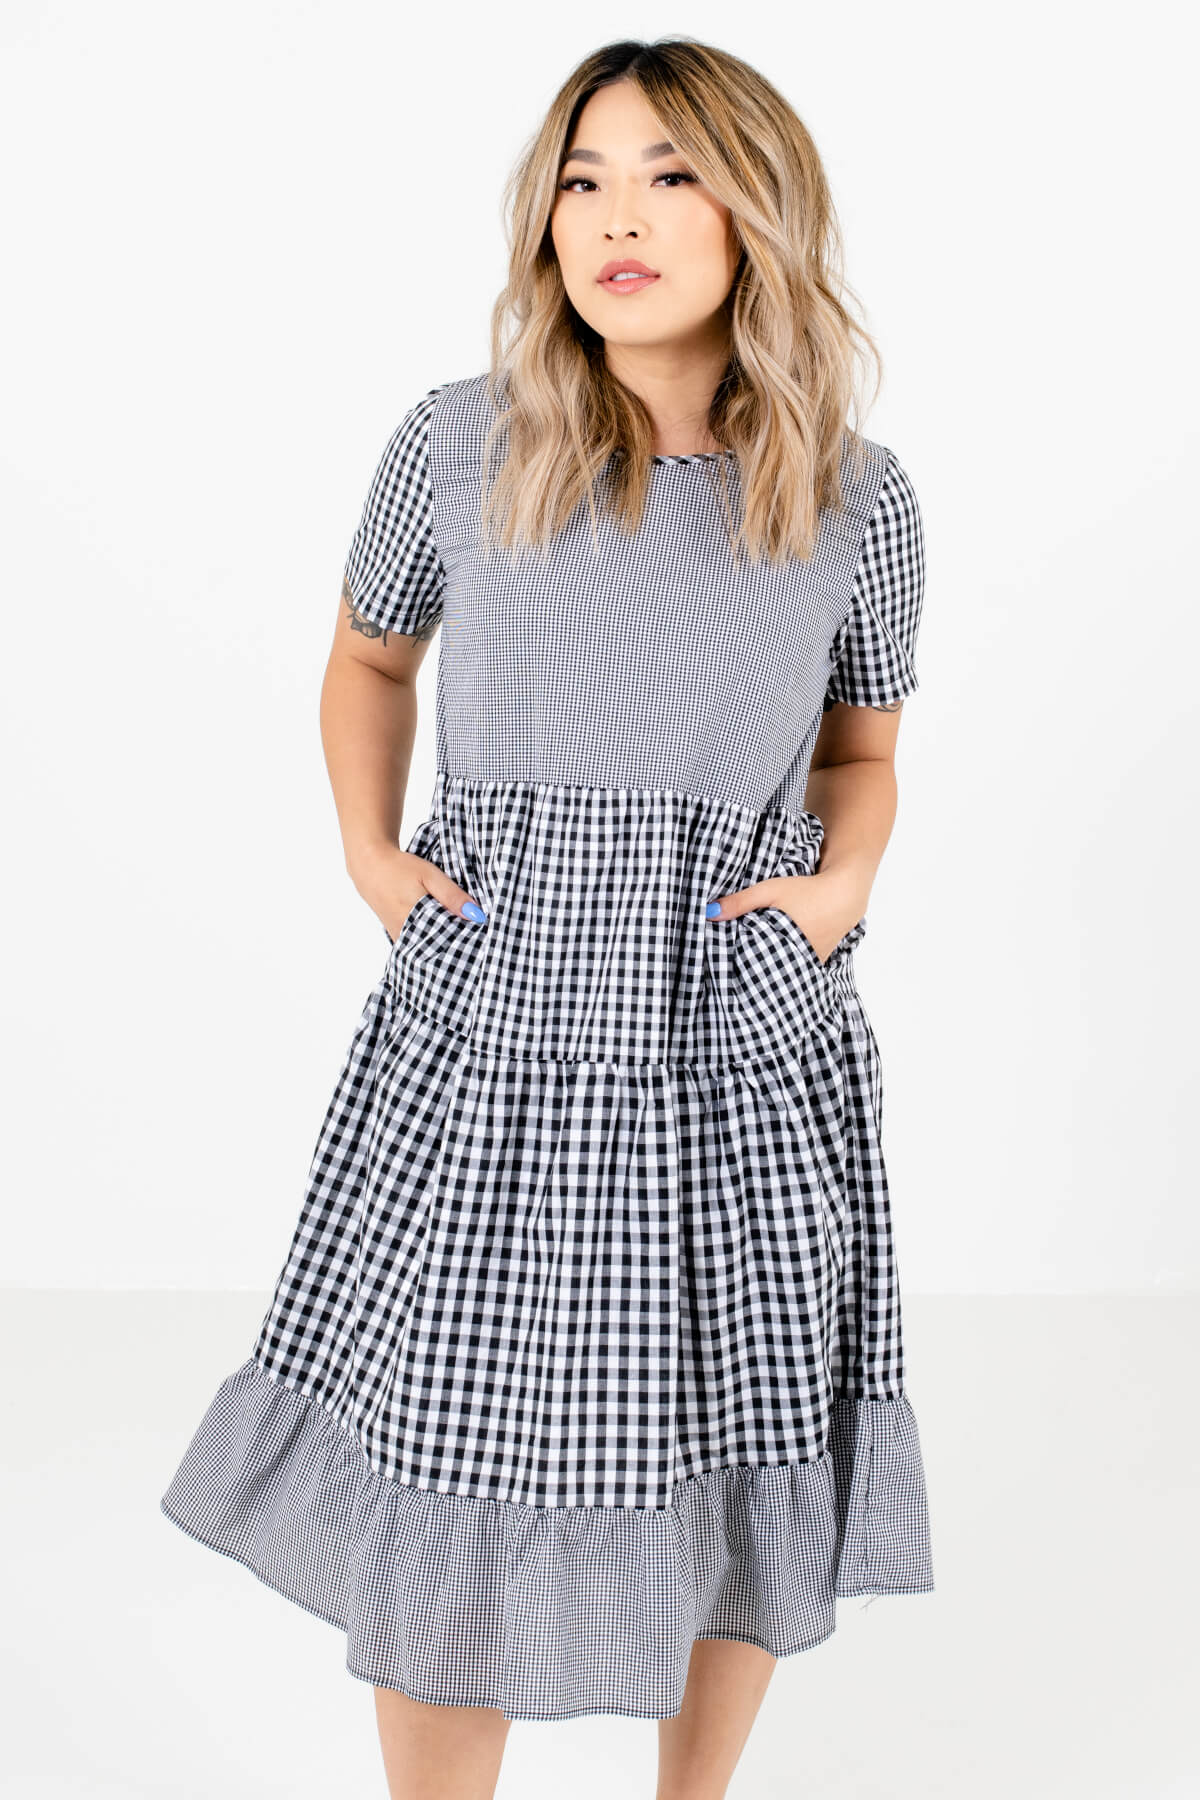 Black and White Gingham Patterned Boutique Knee-Length Dresses for Women